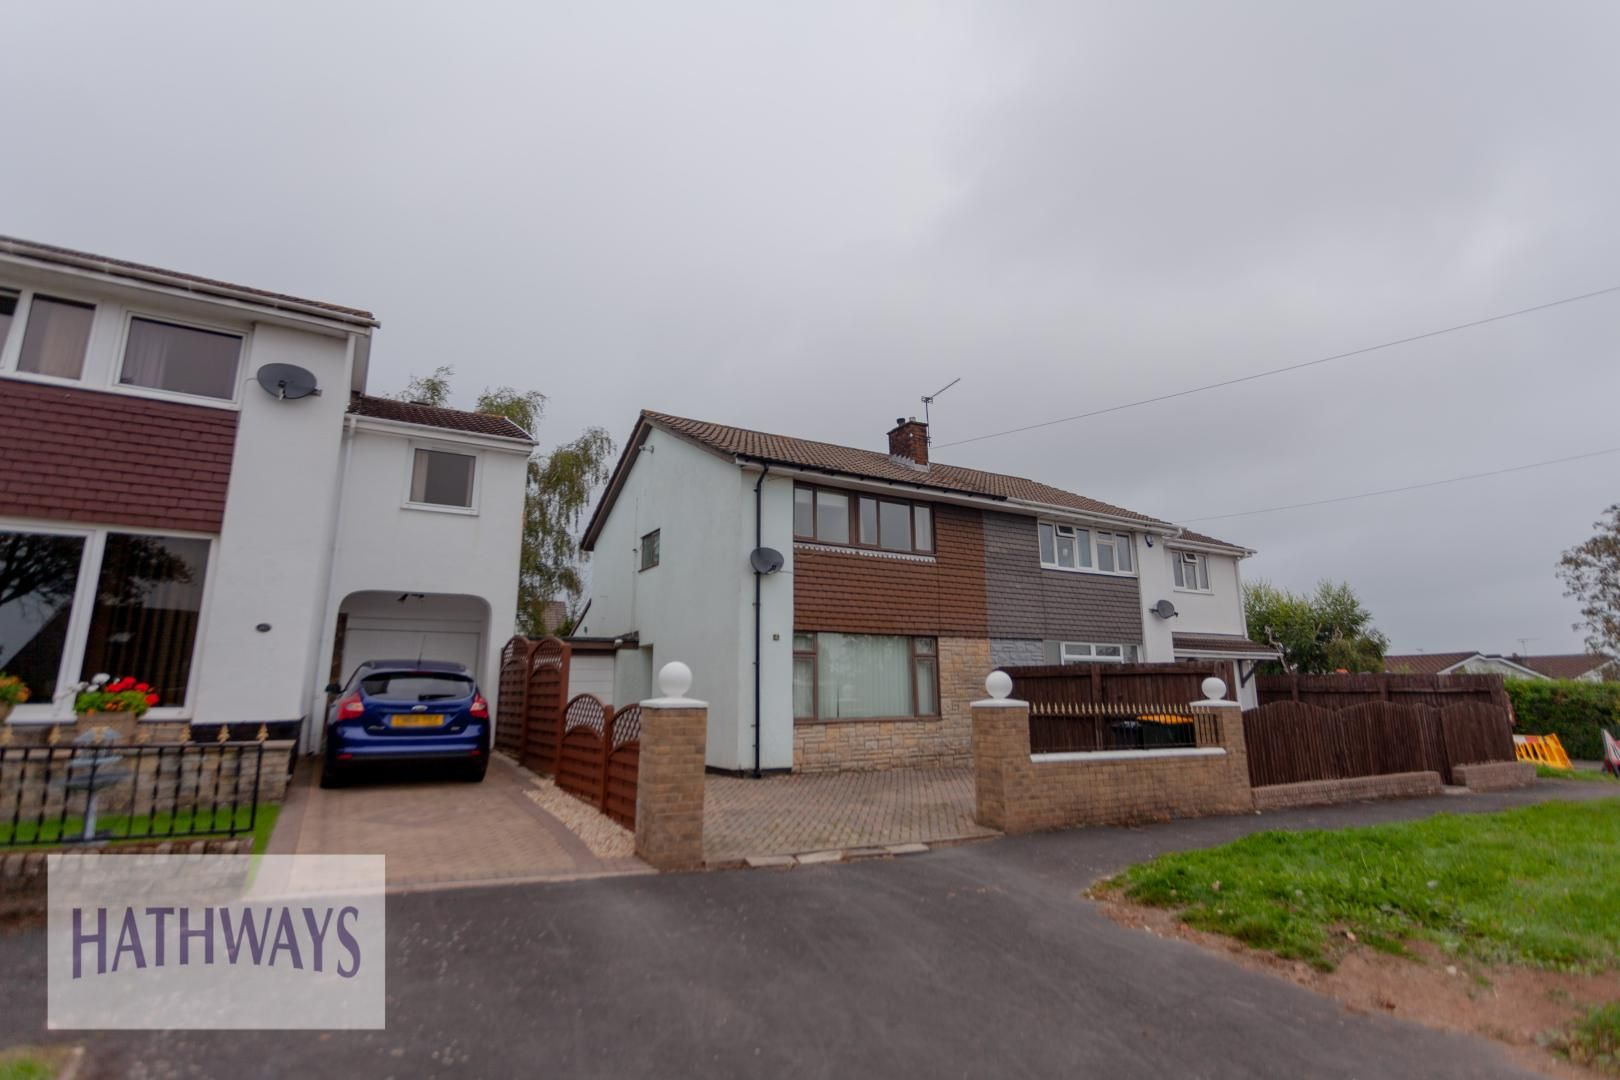 3 bed house for sale in Highfield Road, NP18